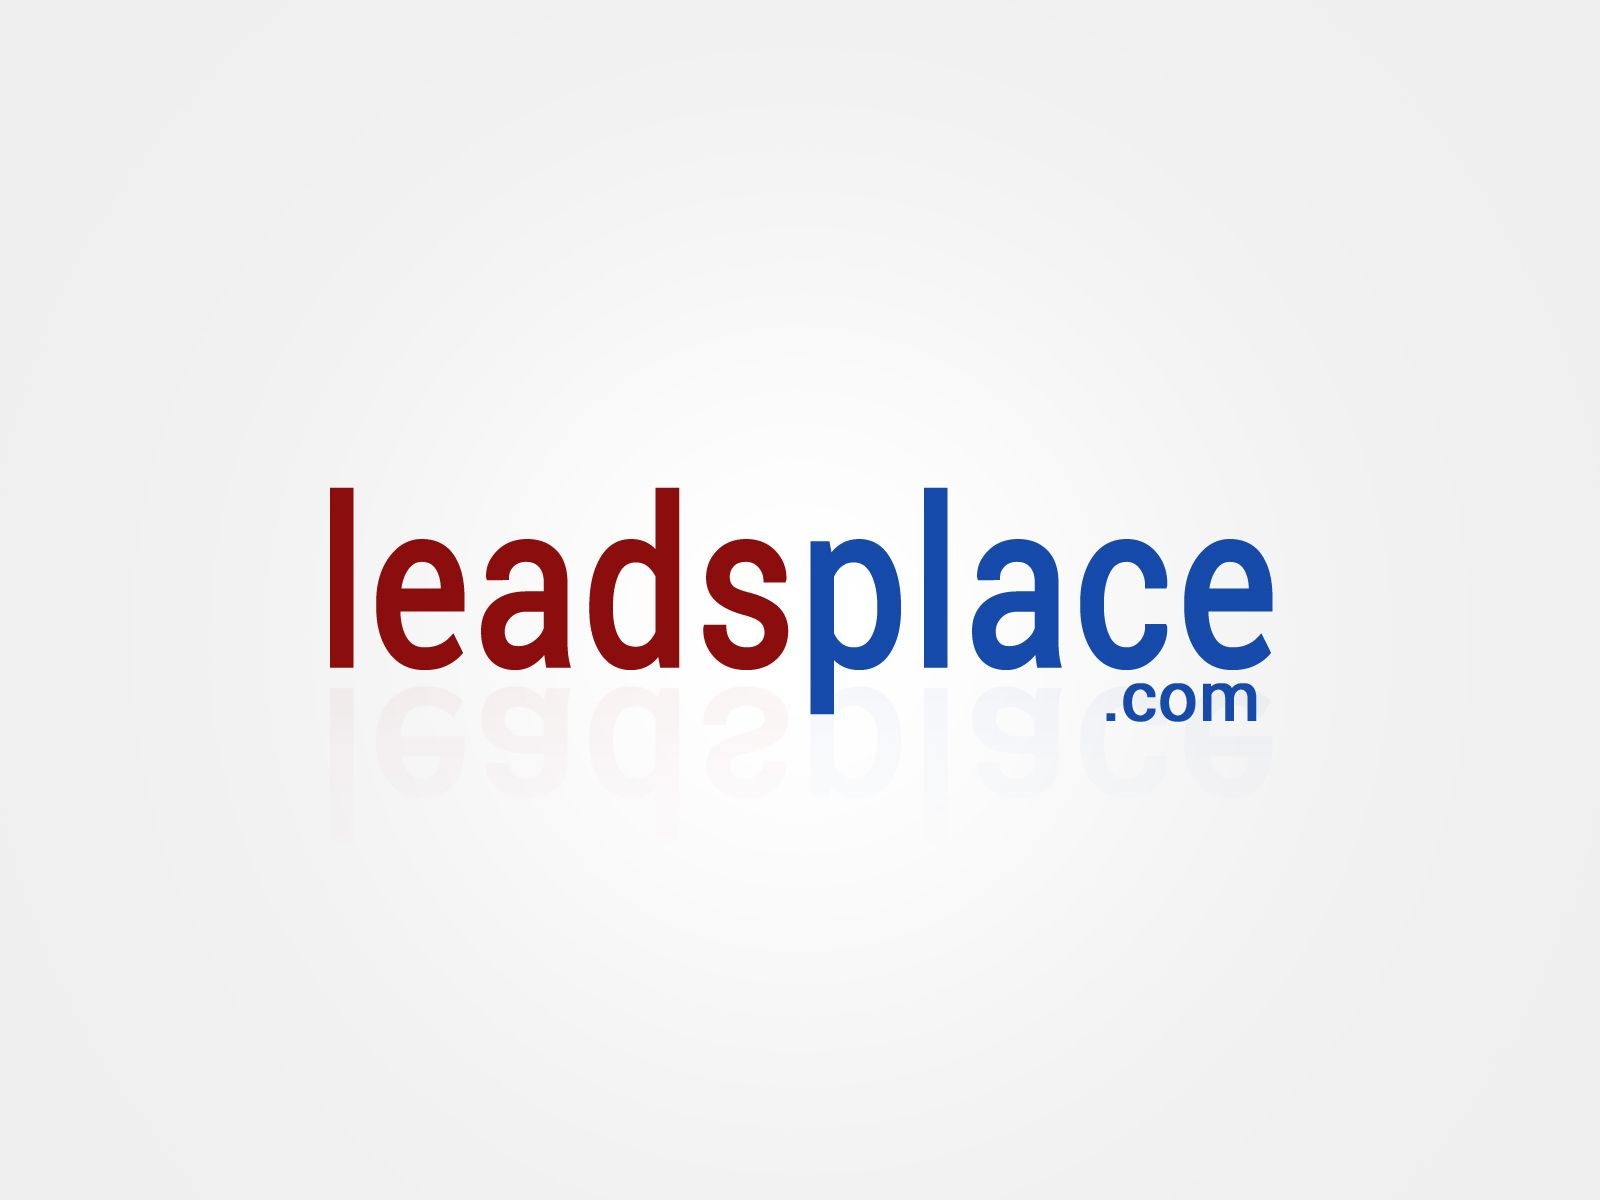 leadsplace.com - логотип - дизайнер bonvian